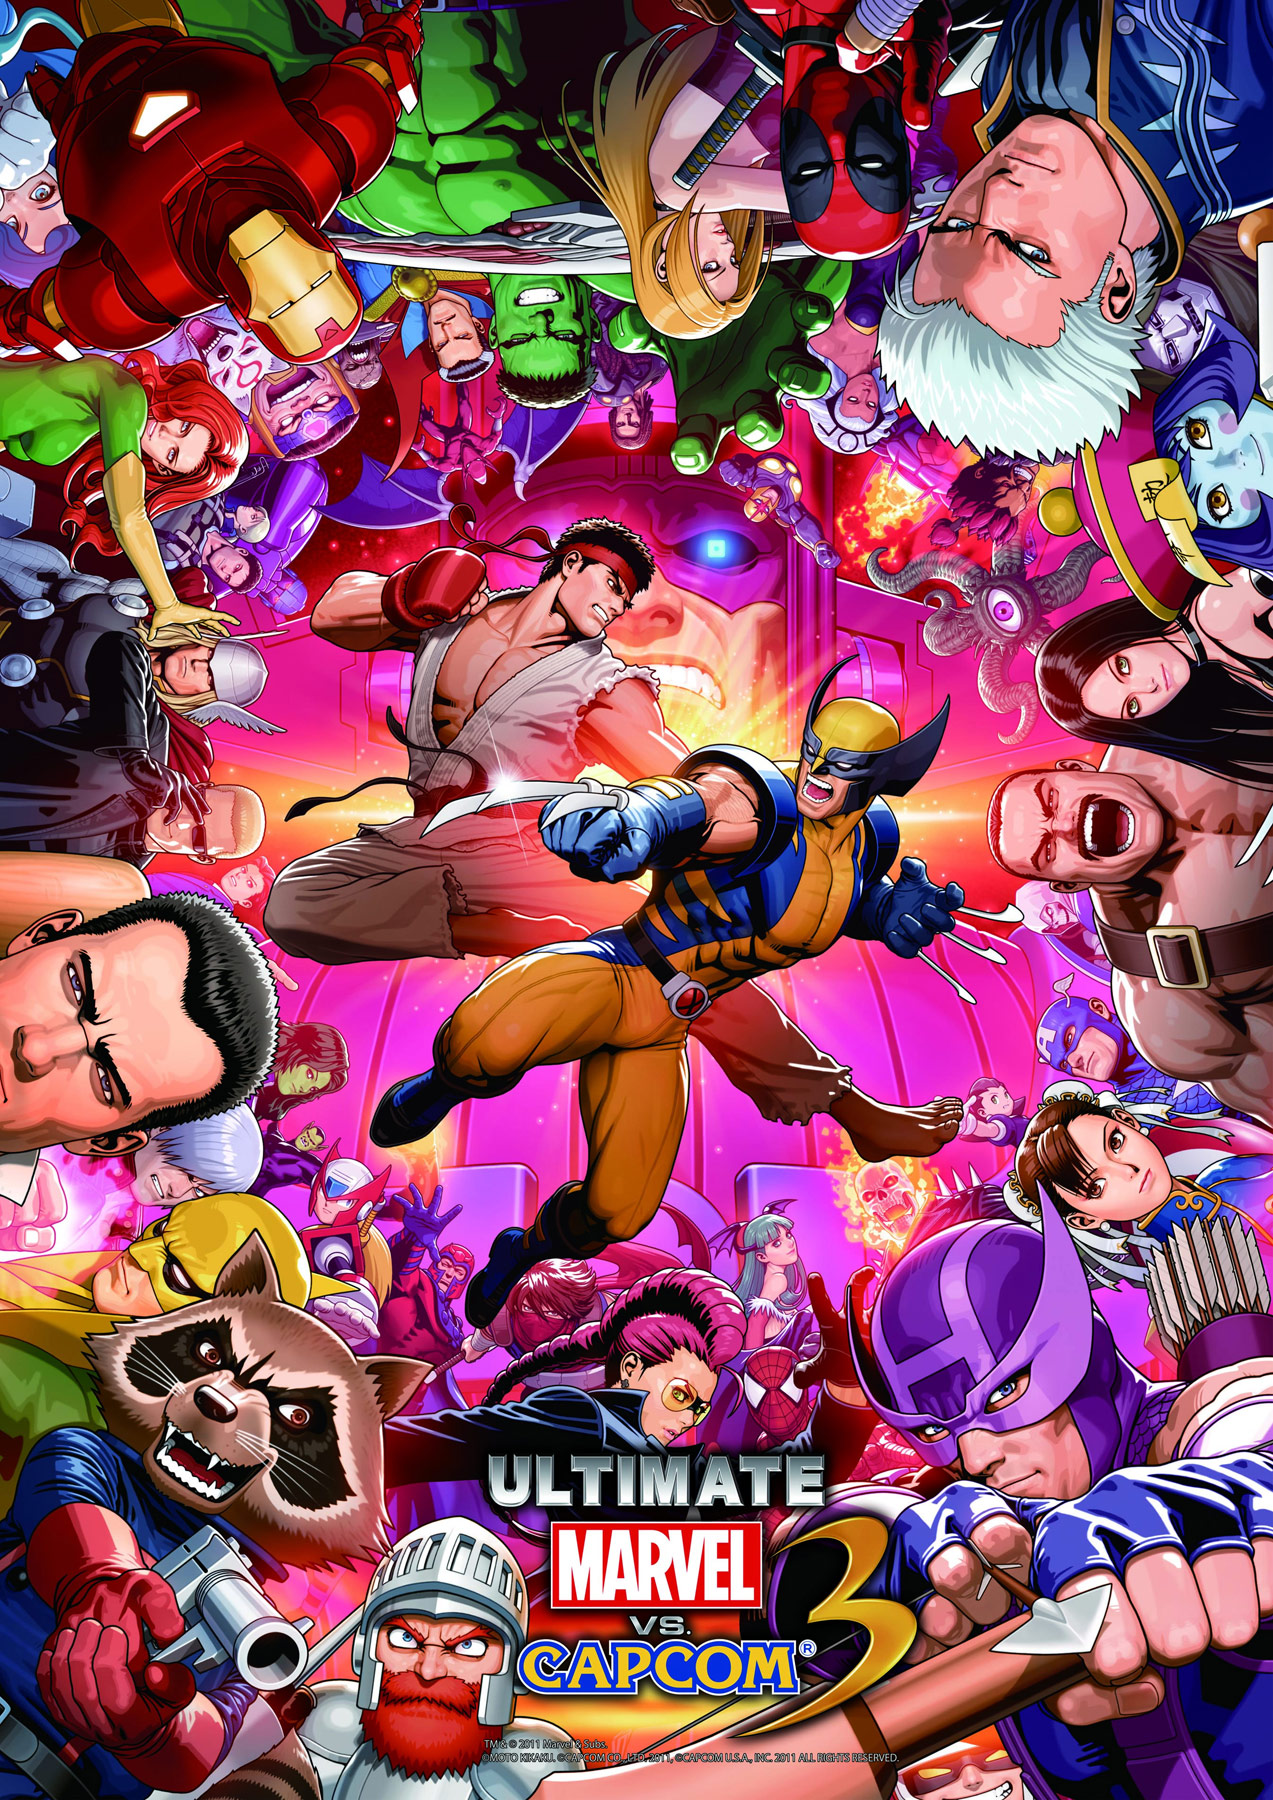 Marvel vs. Capcom 3 Art Gallery 10 out of 16 image gallery